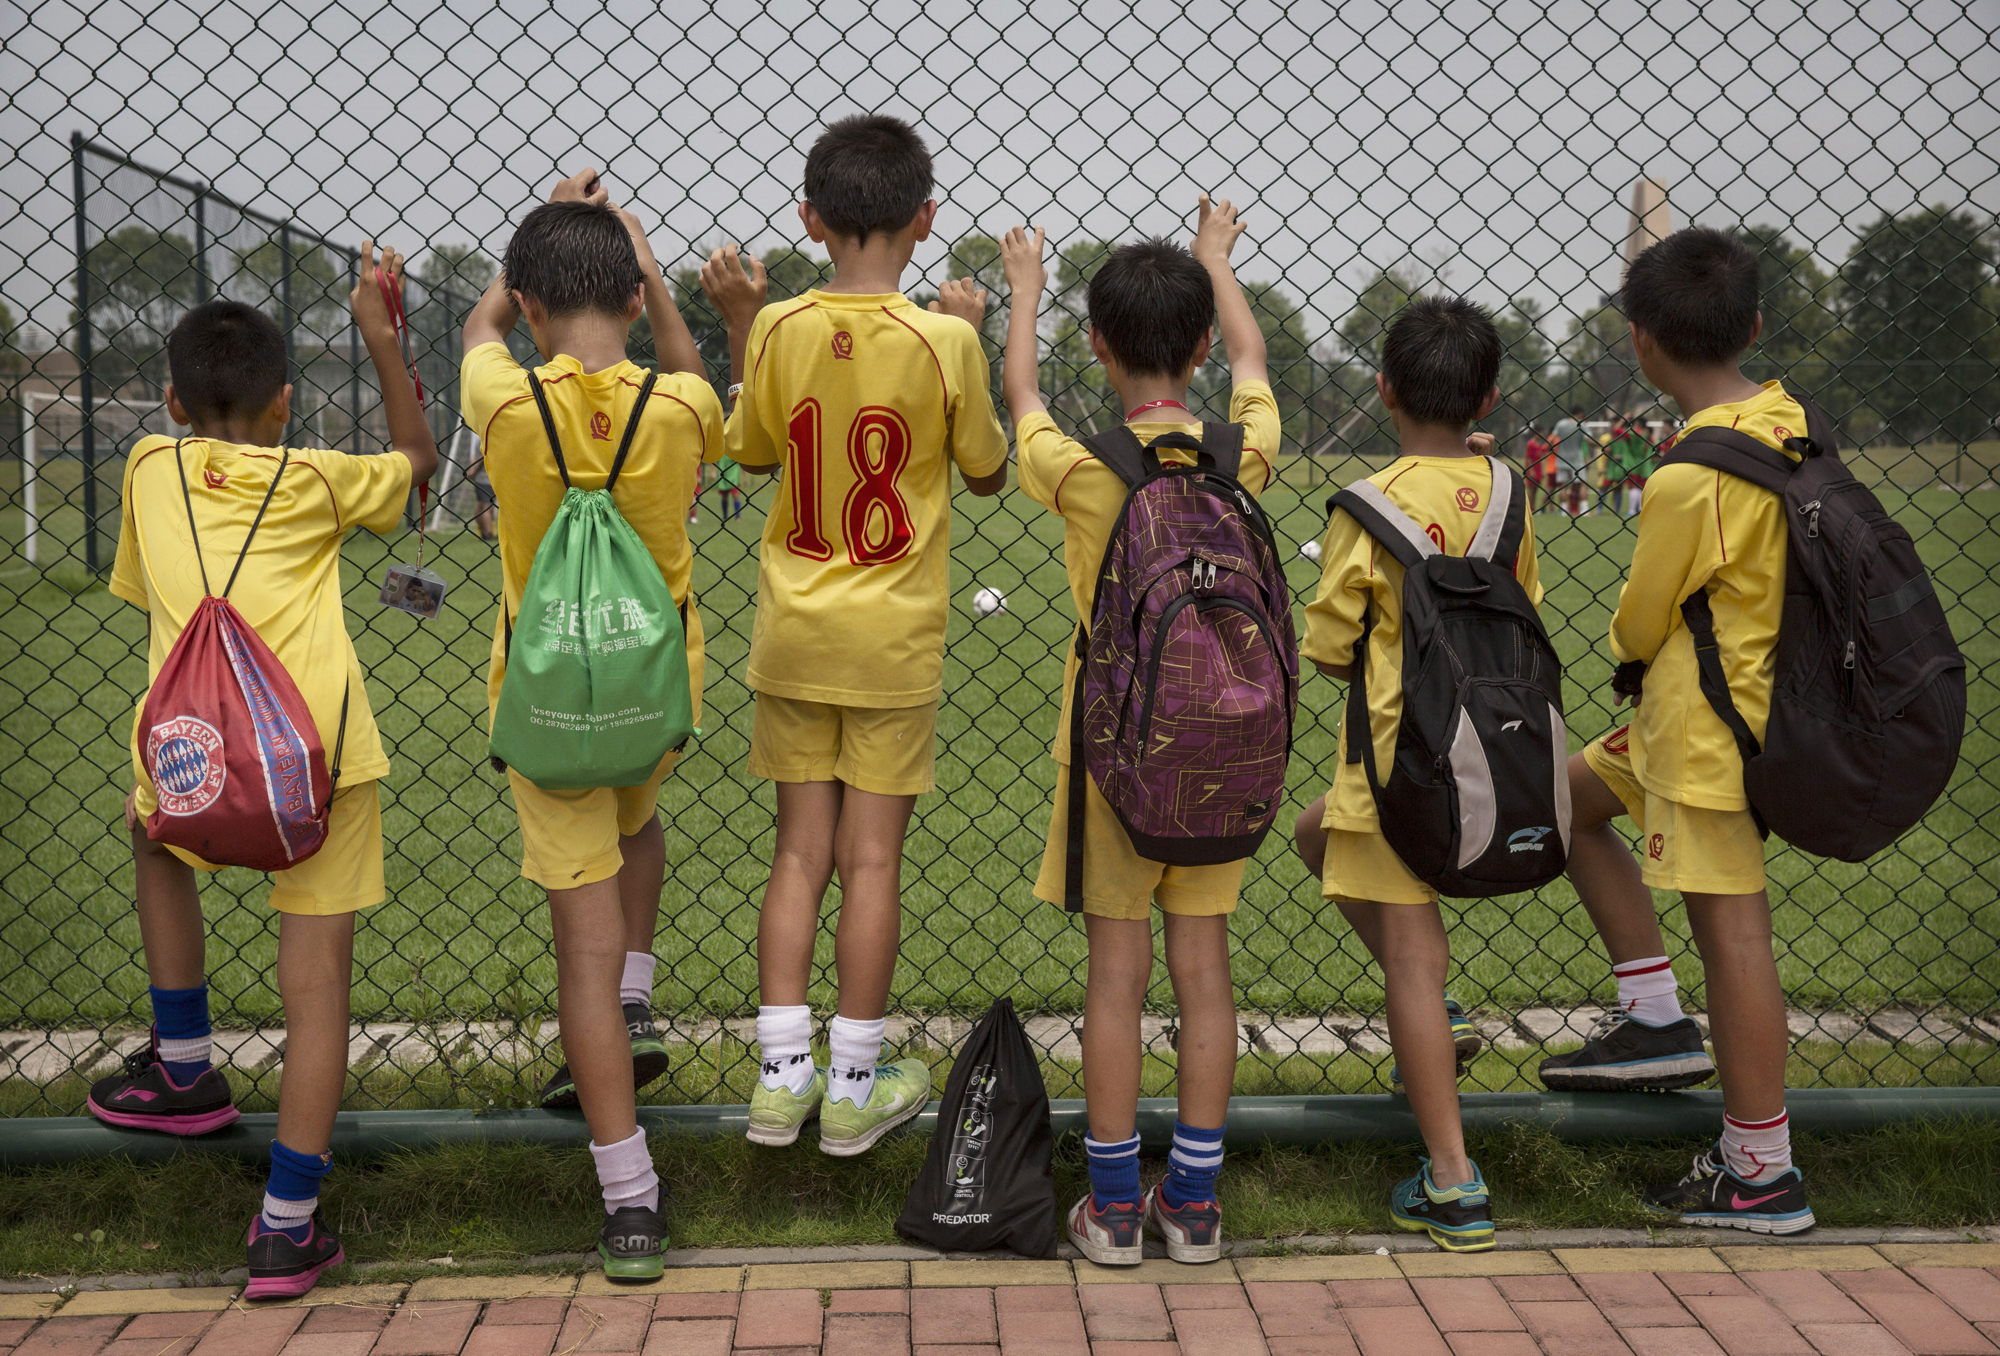 Players watch others train at the Evergrande International Football School.